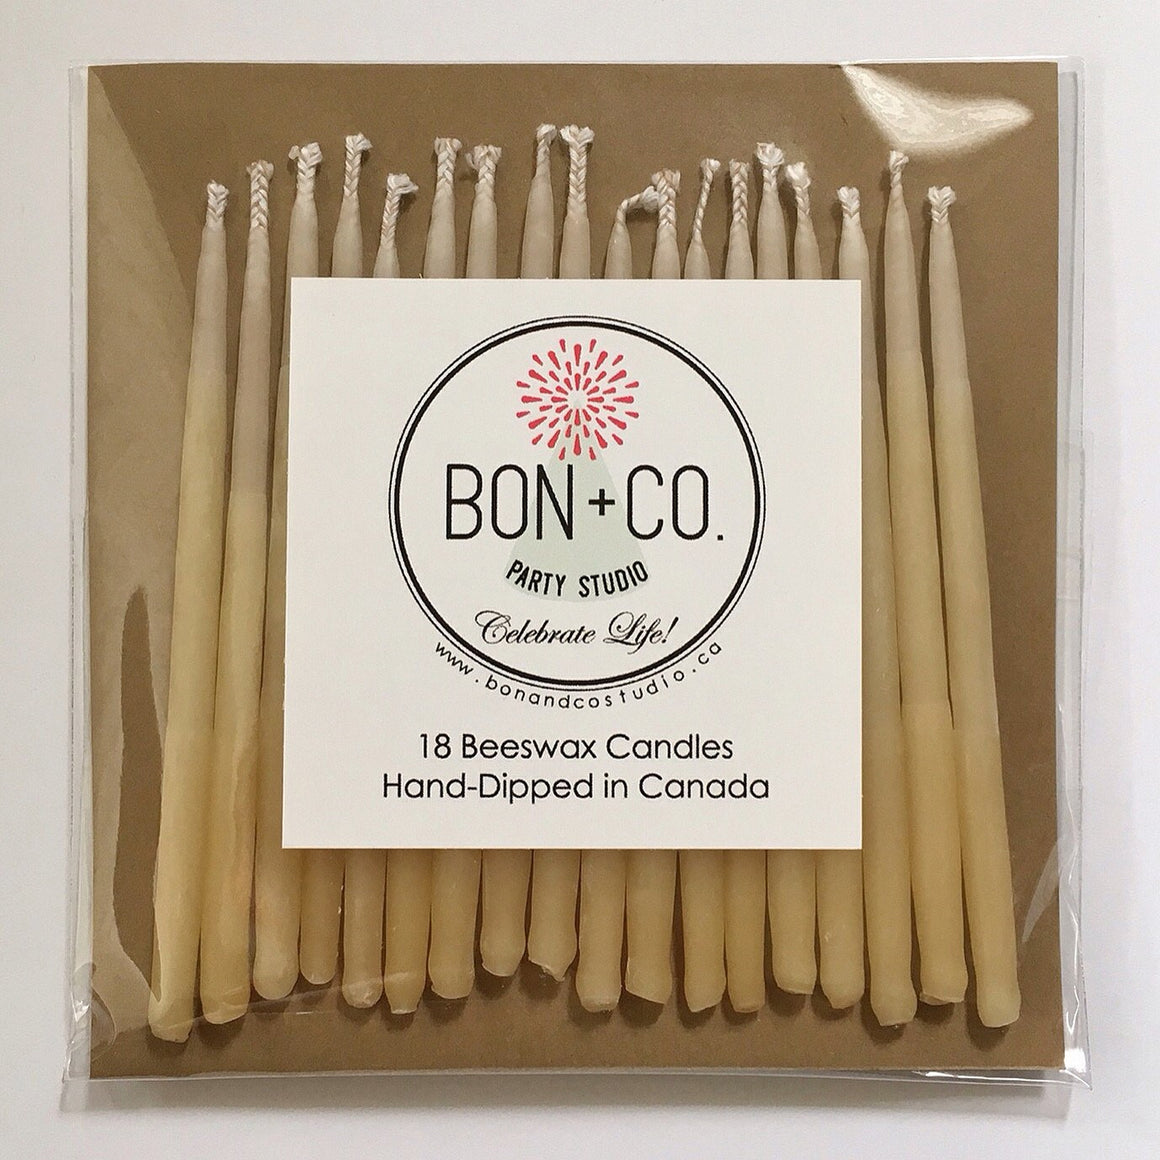 "CANDLES 3"" BEESWAX - OMBRE LIGHT YELLOW, Candles + Sparklers, BON + CO - Bon + Co. Party Studio"